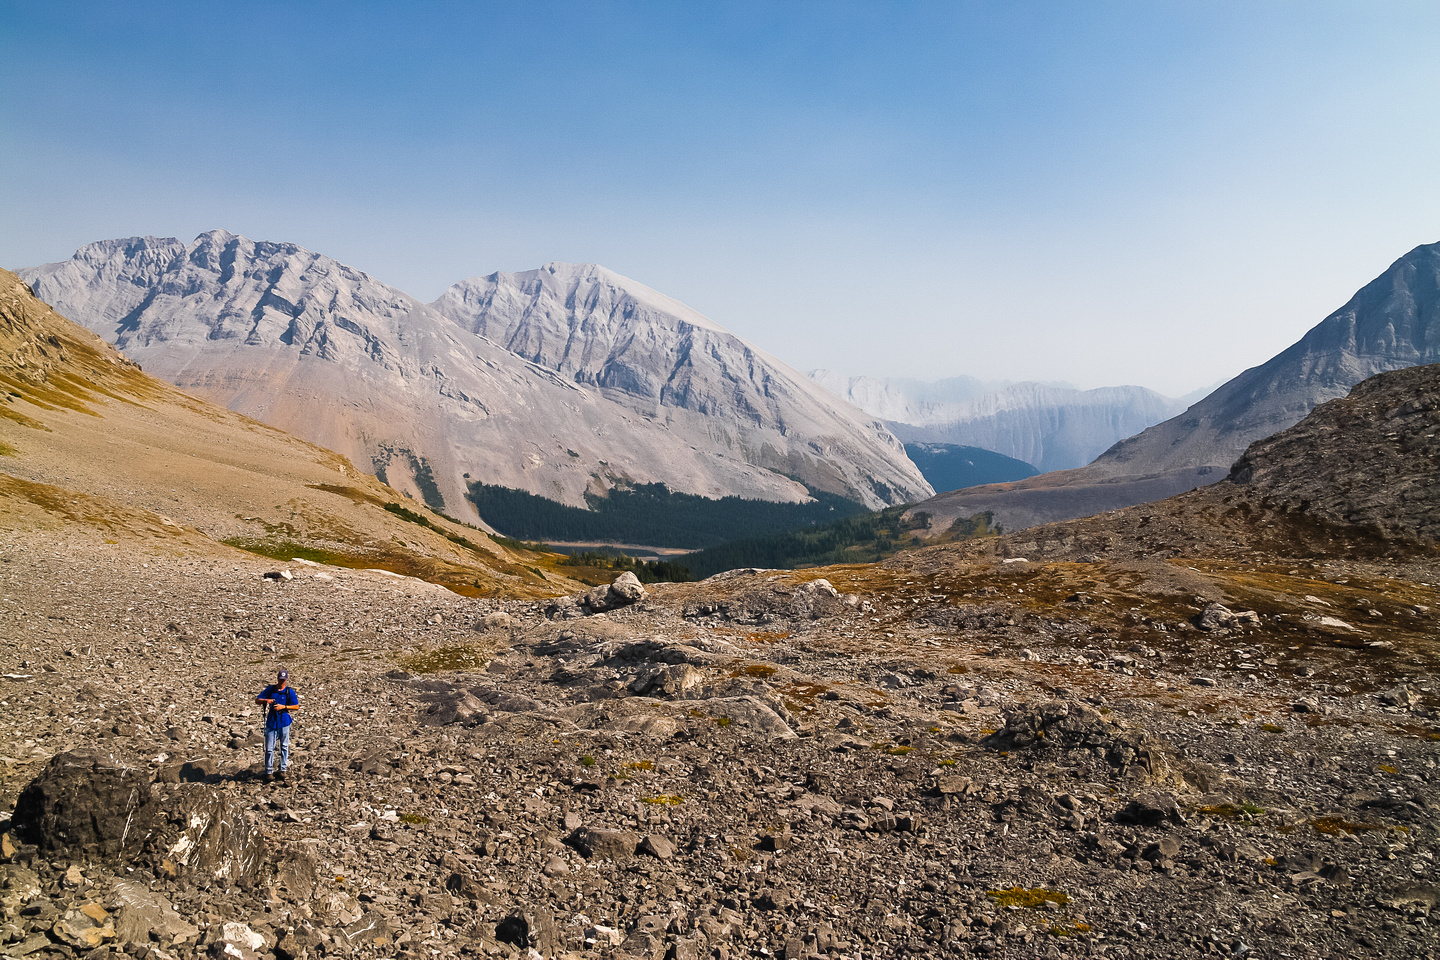 There was an obvious trail in the scree that took us down into the Three Isle headwater valley and towards Three Isle Lake